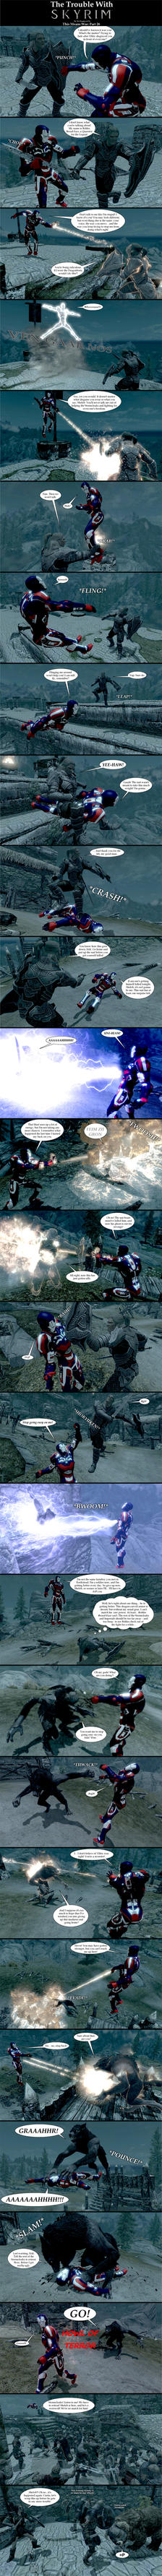 The Trouble with Skyrim: This Means War Part 26 by Sir-Douglas-of-Fir